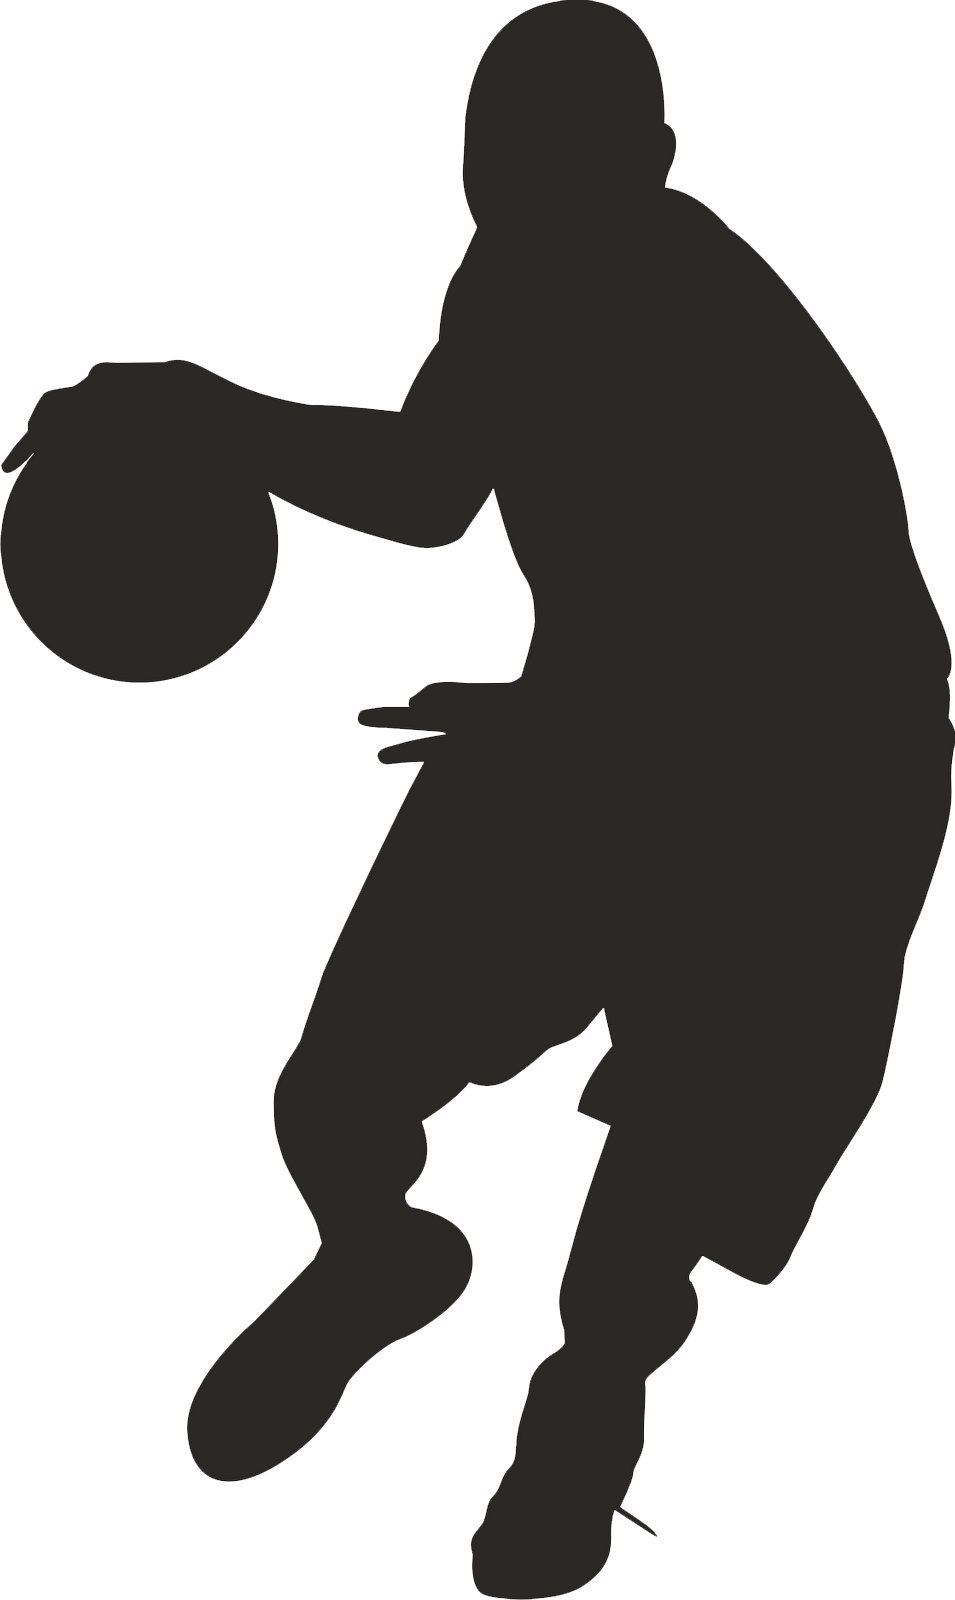 Clipart basketball black and white clip free Silhouette Basketball Players at GetDrawings.com | Free for personal ... clip free